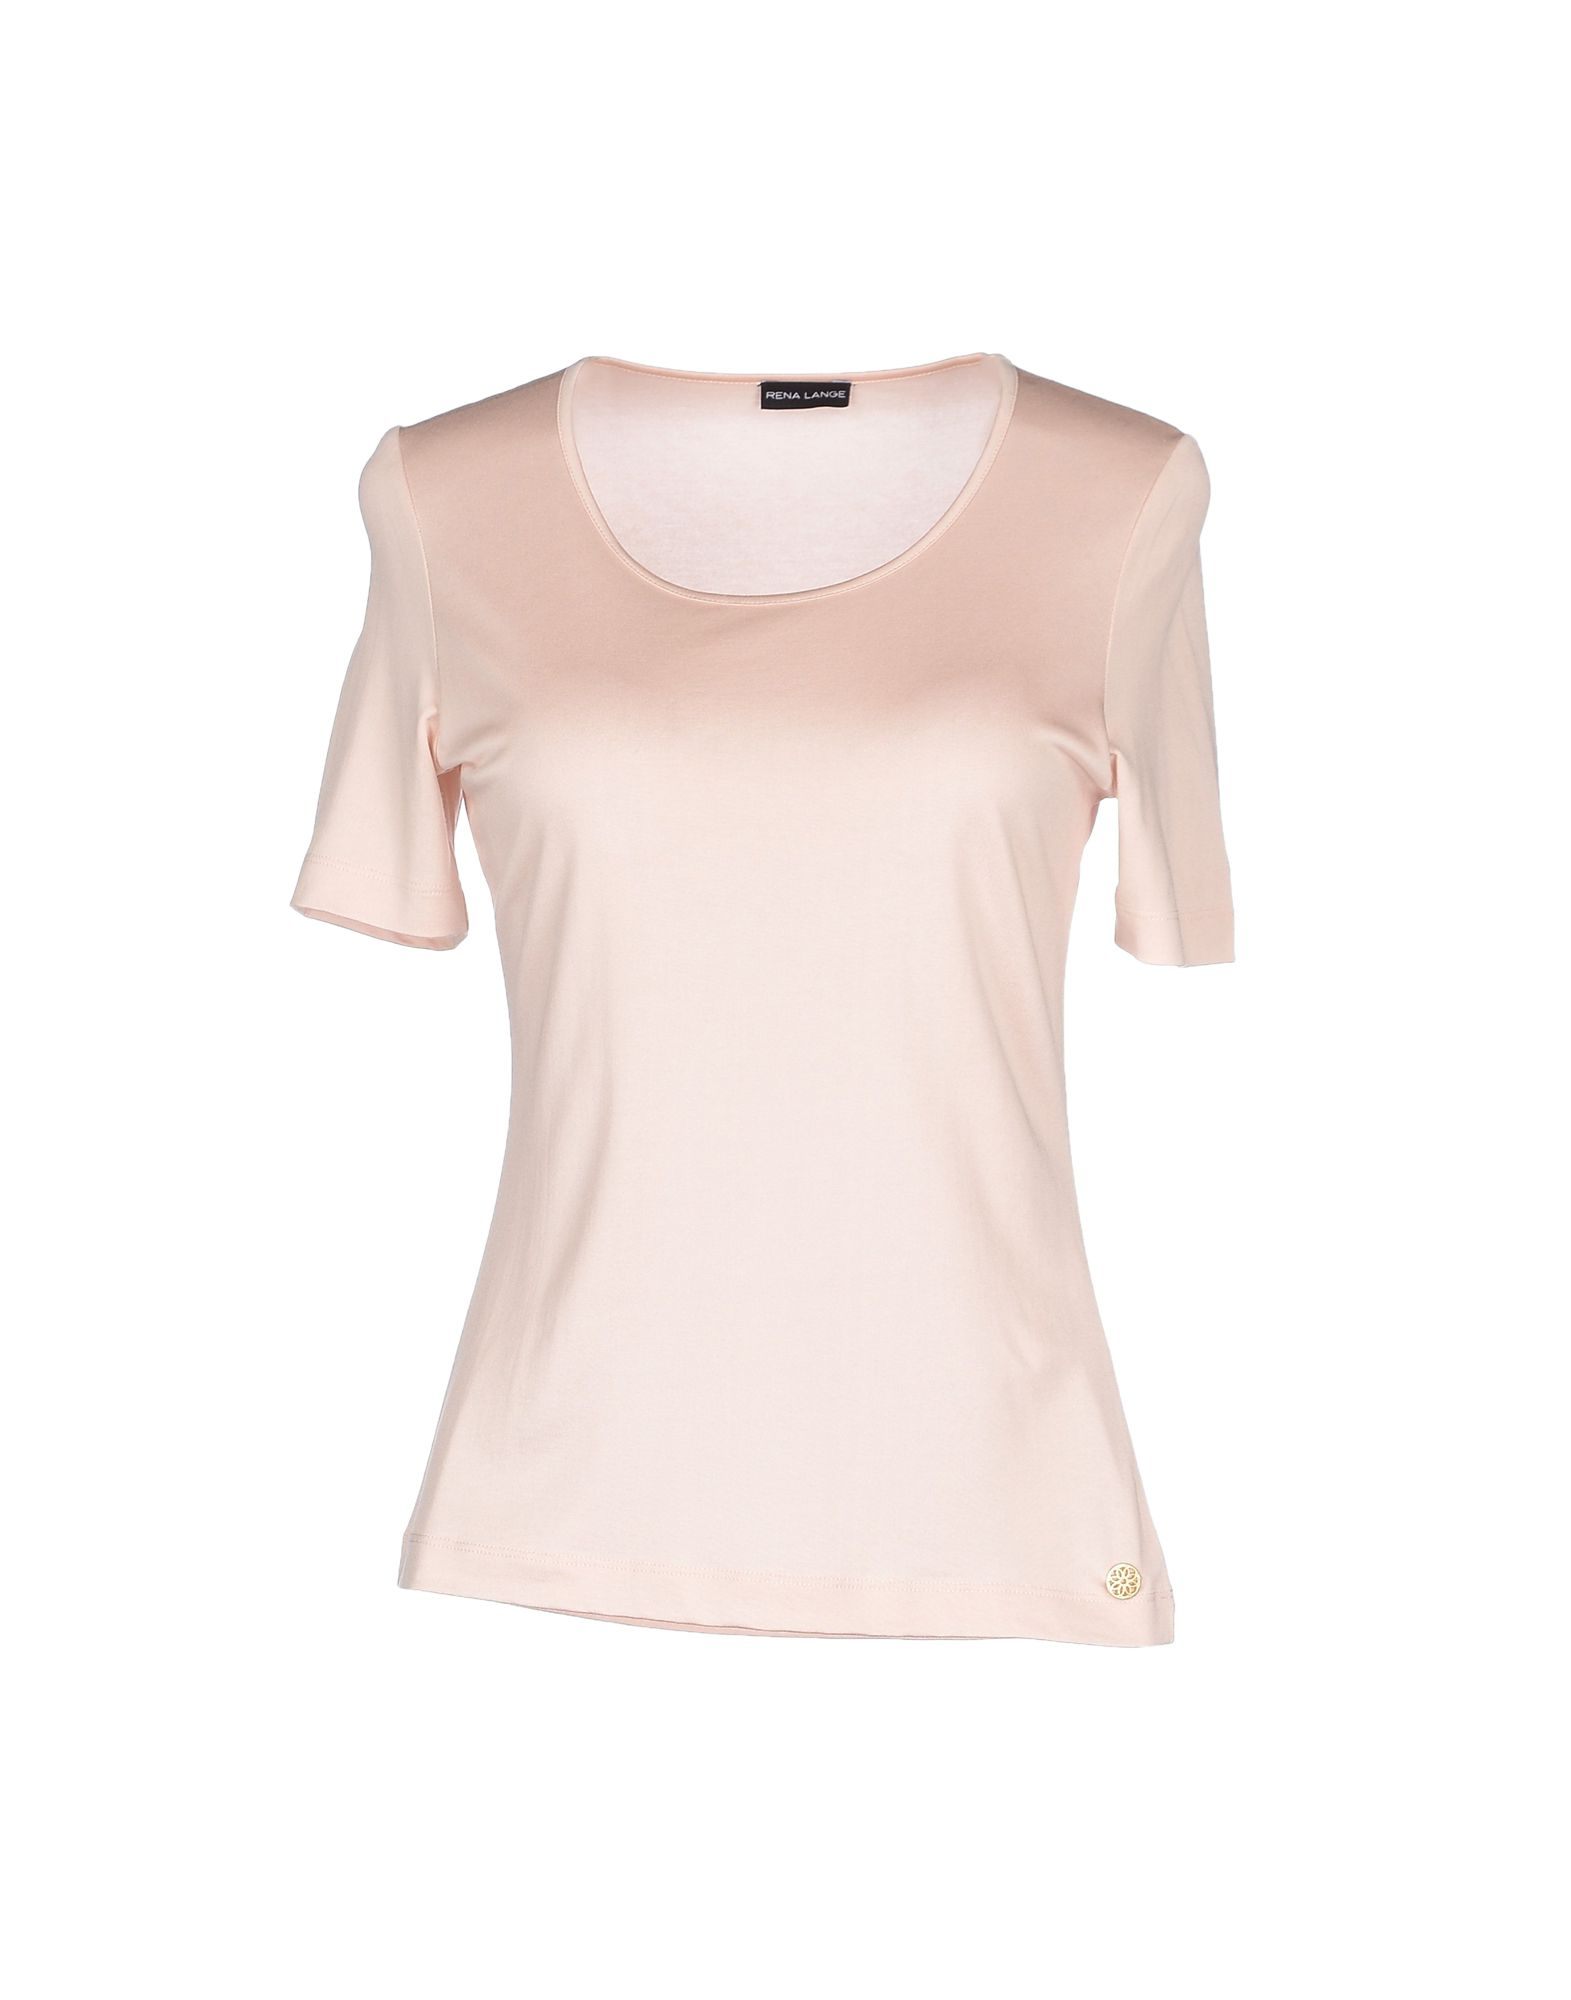 rena lange t shirt in pink lyst. Black Bedroom Furniture Sets. Home Design Ideas